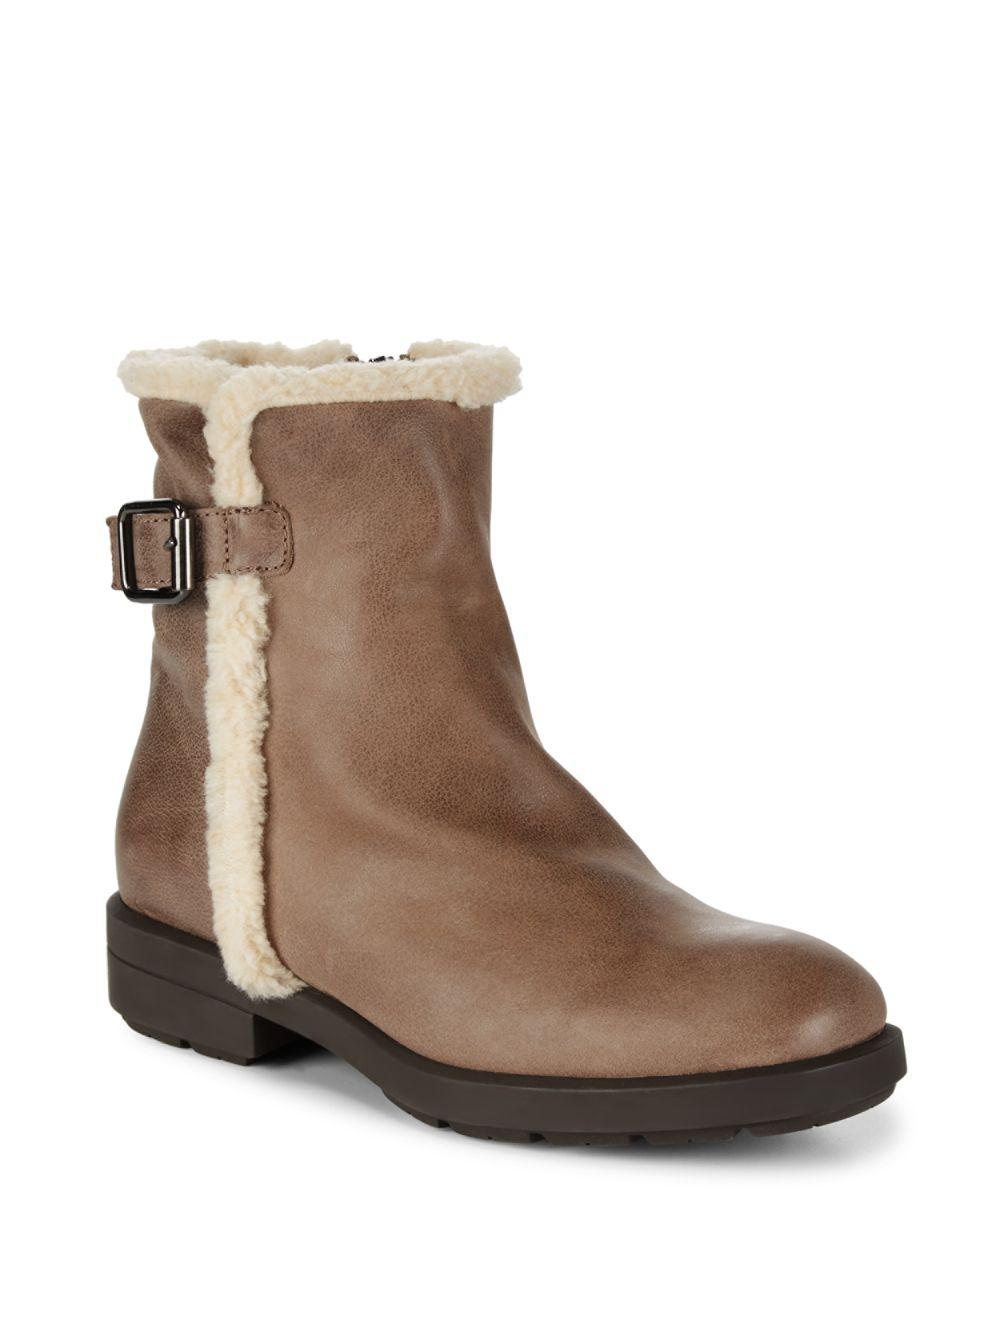 Aquatalia Shearling-Trimmed Round-Toe Ankle Boots for sale cheap price o6Nnrh